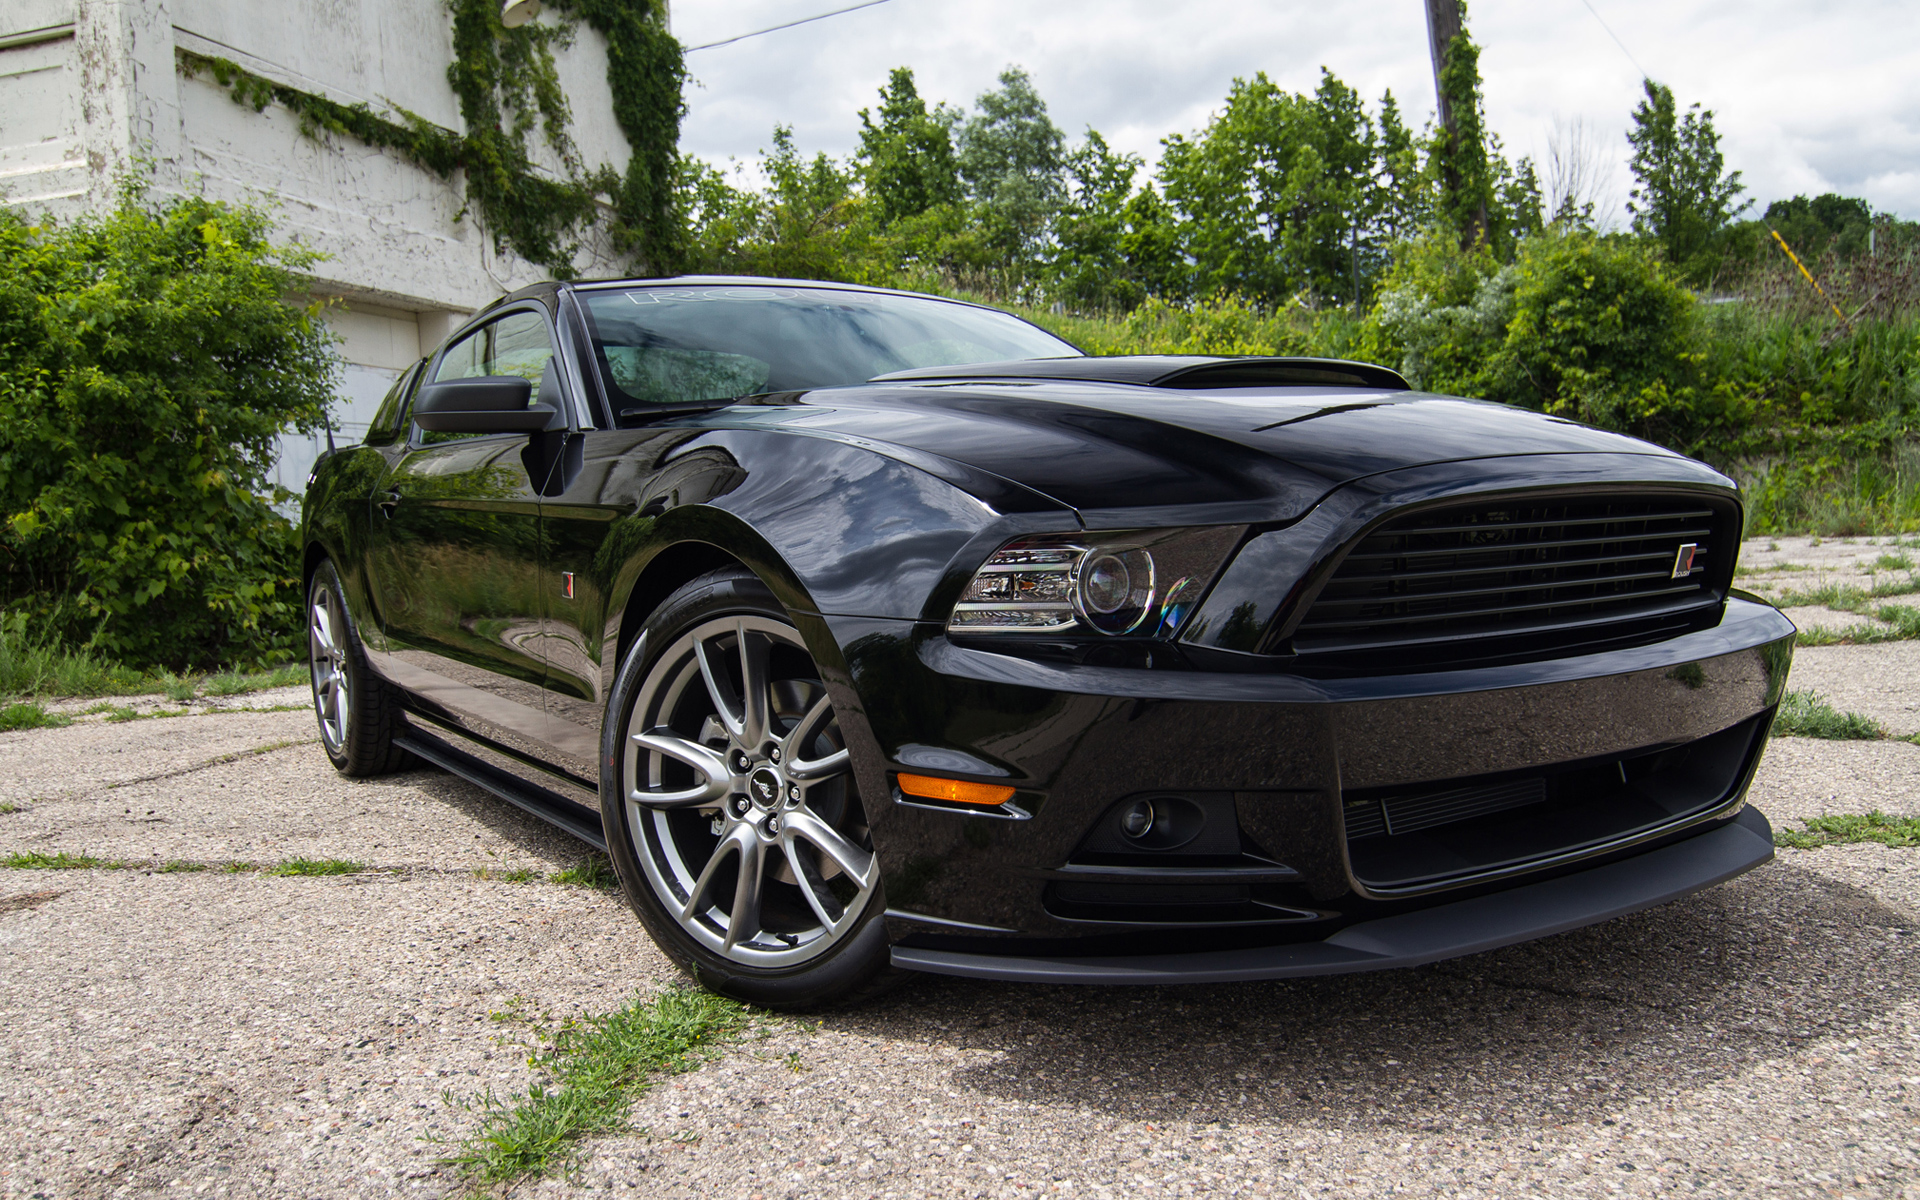 2013 roush rs mustang wallpaper hd car wallpapers id 2892